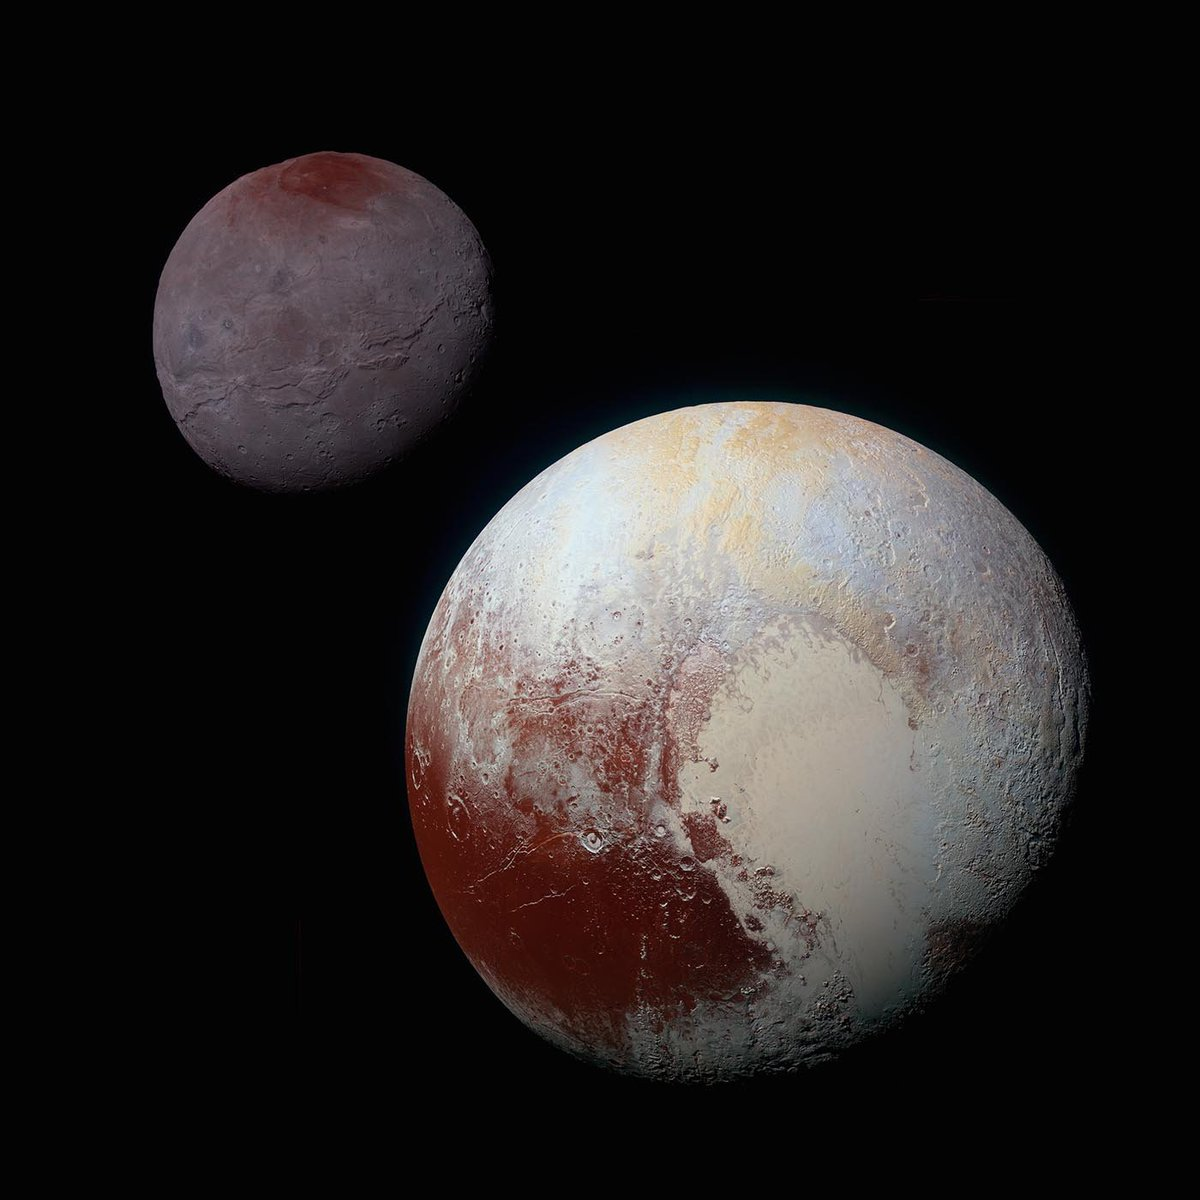 Saving #Pluto from Planetary Destruction   http:// wp.me/p7yOd2-iJ  &nbsp;    #space #cosmos #astronomy #iau #planet #cosmology #astrophysics #cosmic <br>http://pic.twitter.com/dCHdMVgAKA